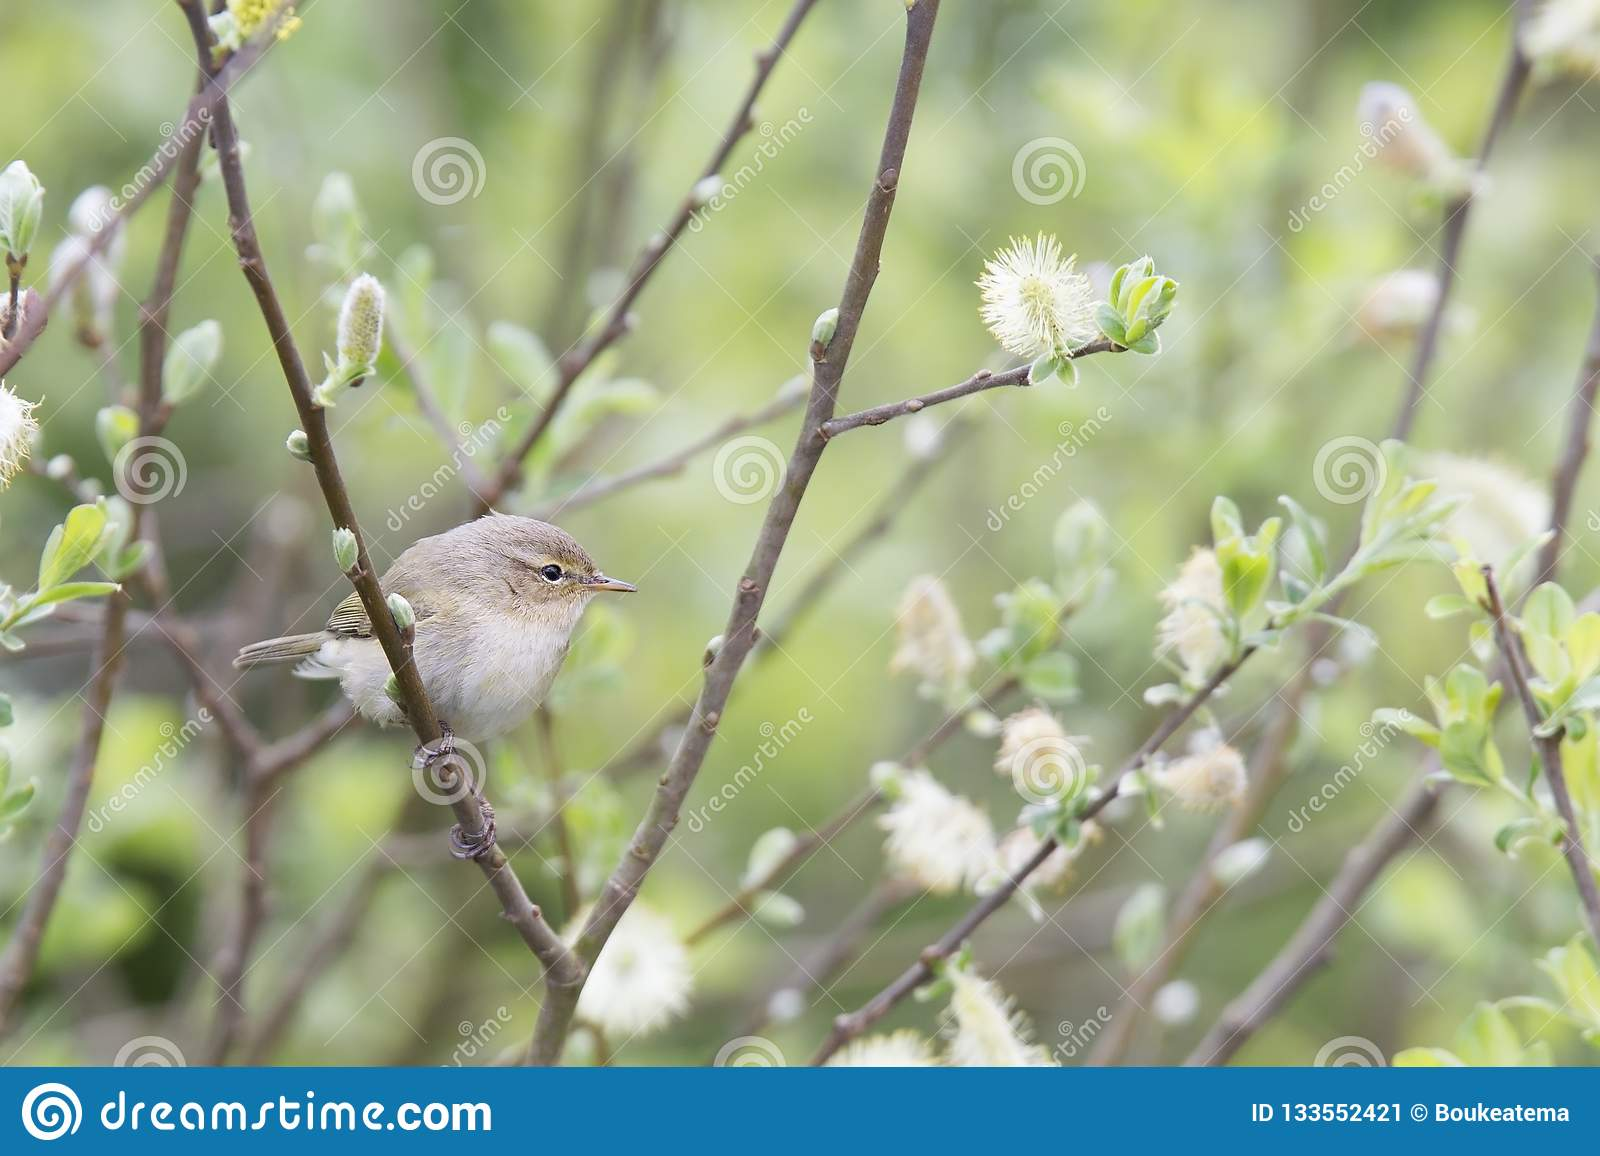 A common chiffchaff Phylloscopus collybita perched on a branch .With a beautiful light green coloured background with leafs and